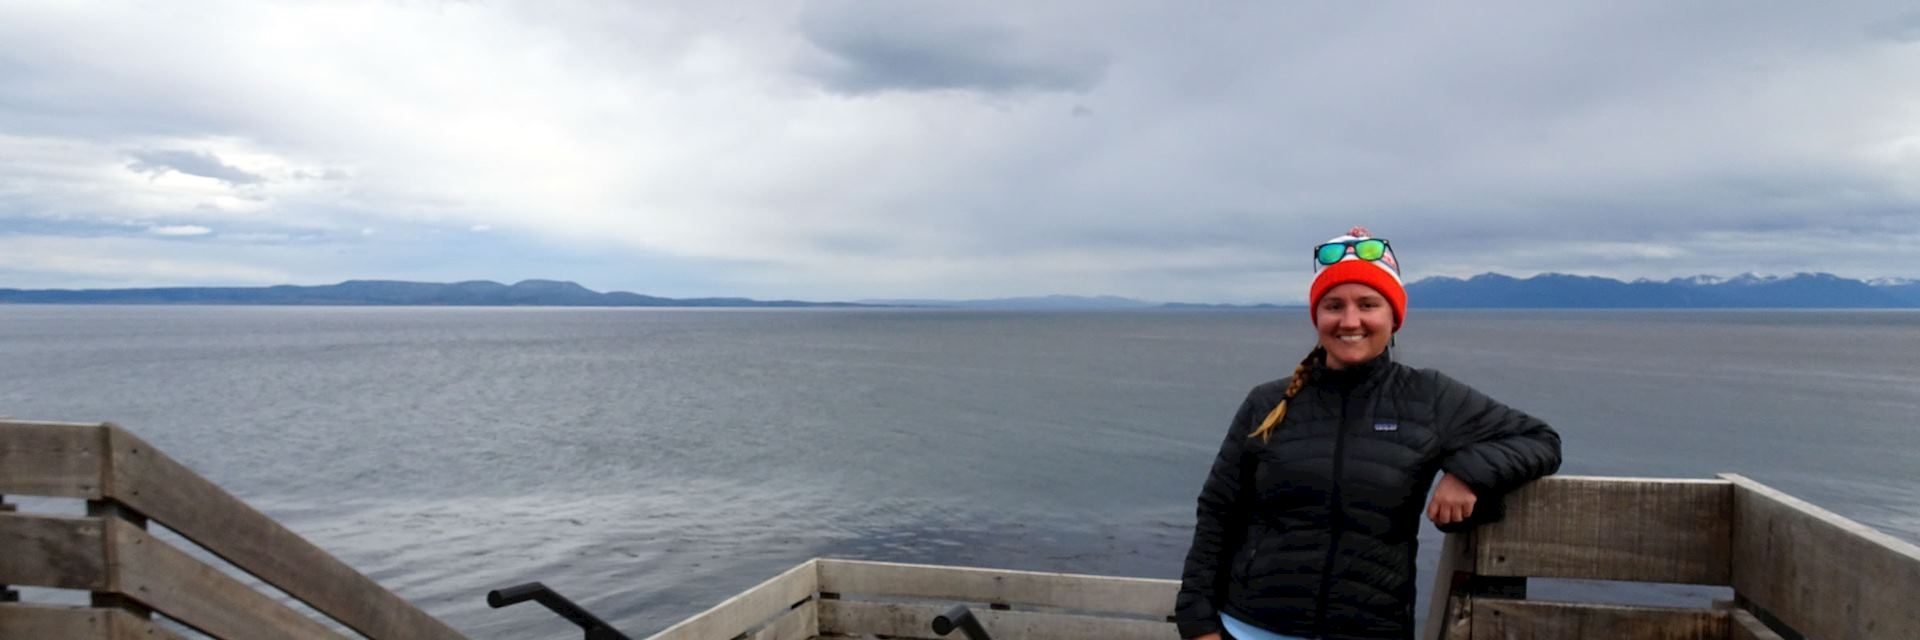 Liz in Puerto Natales, Chile